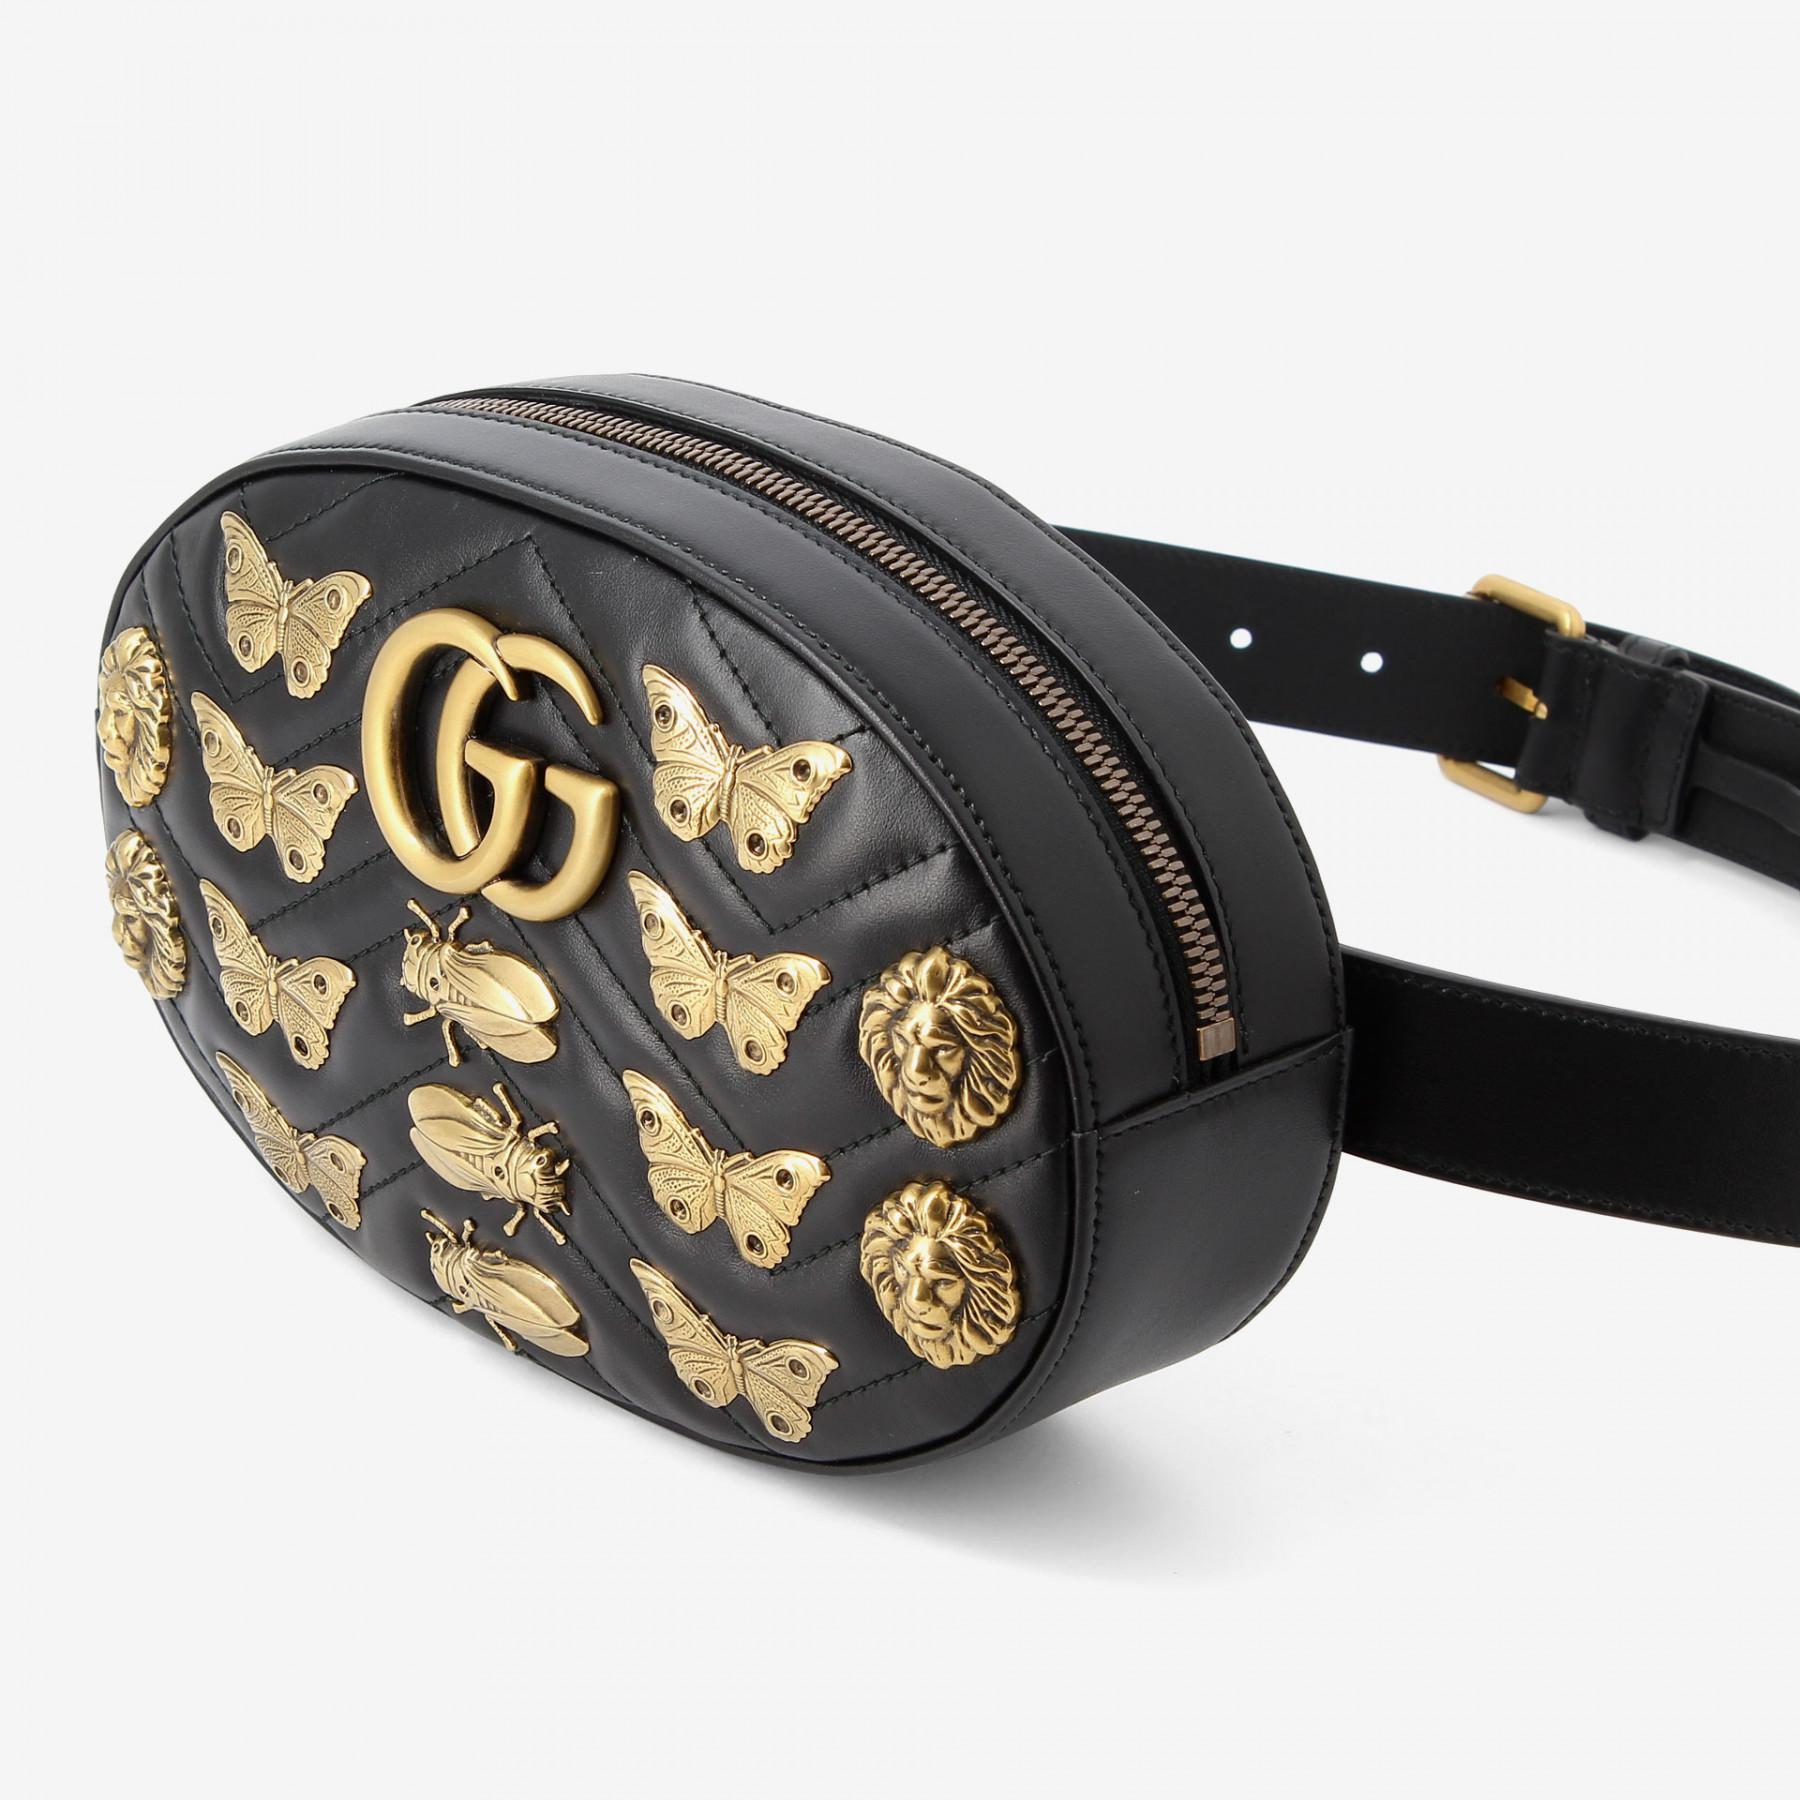 620a3fe45c7 Lyst - Gucci Marmont Animal Studs Leather Belt Bag in Black